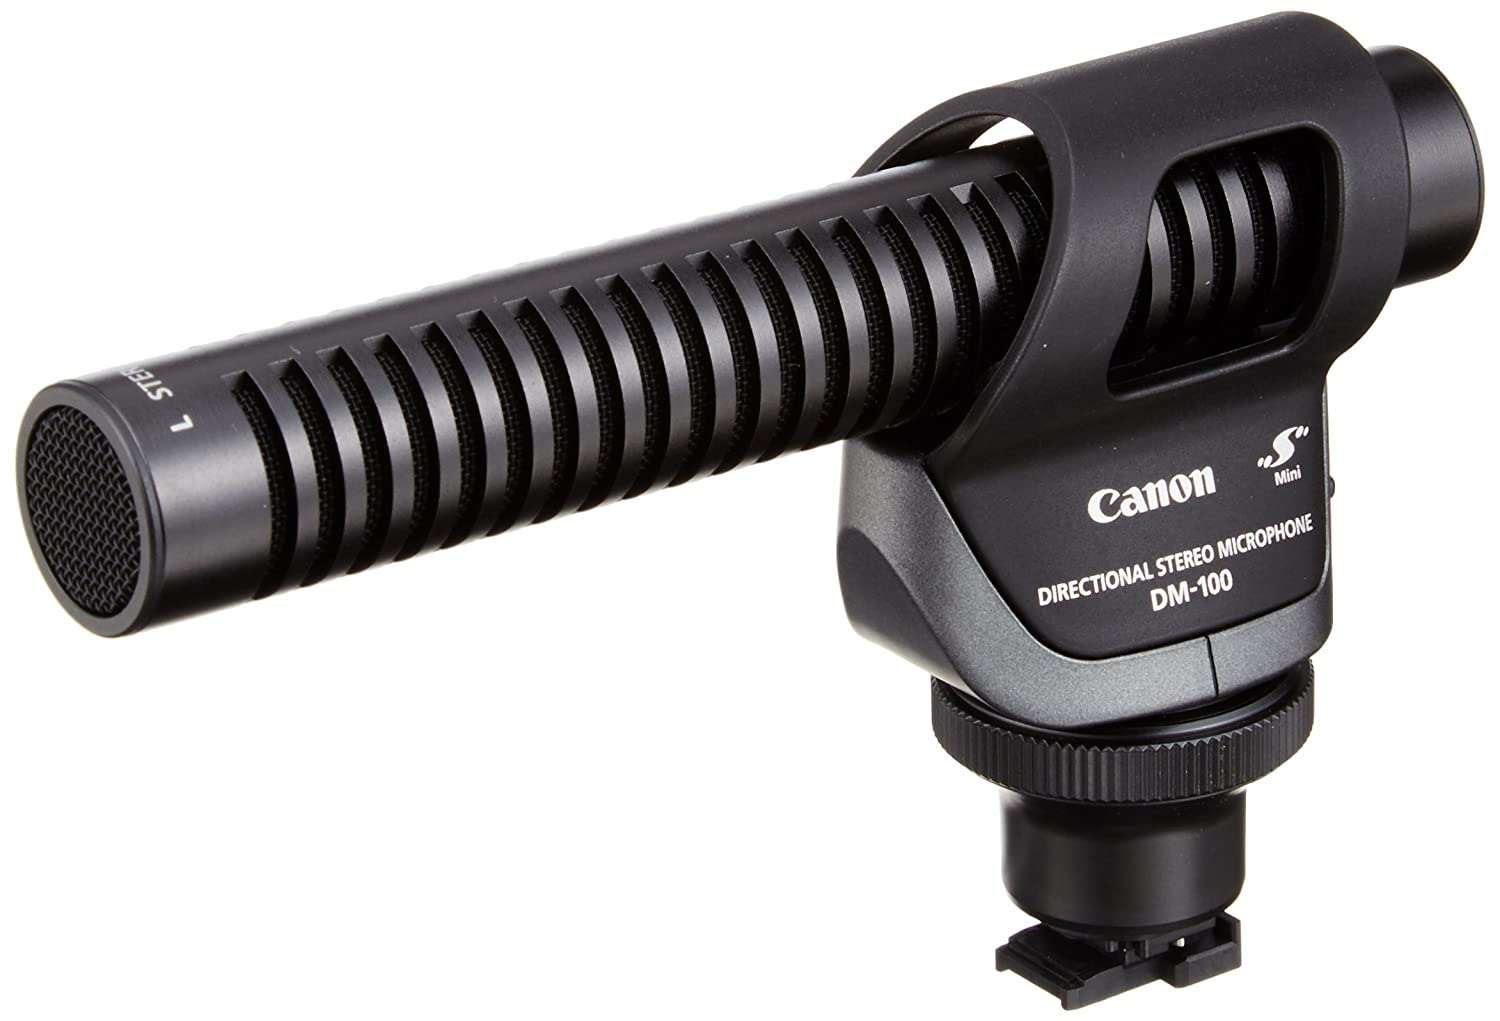 Canon 2591B002 DM-100 Directional Stereo Microphone